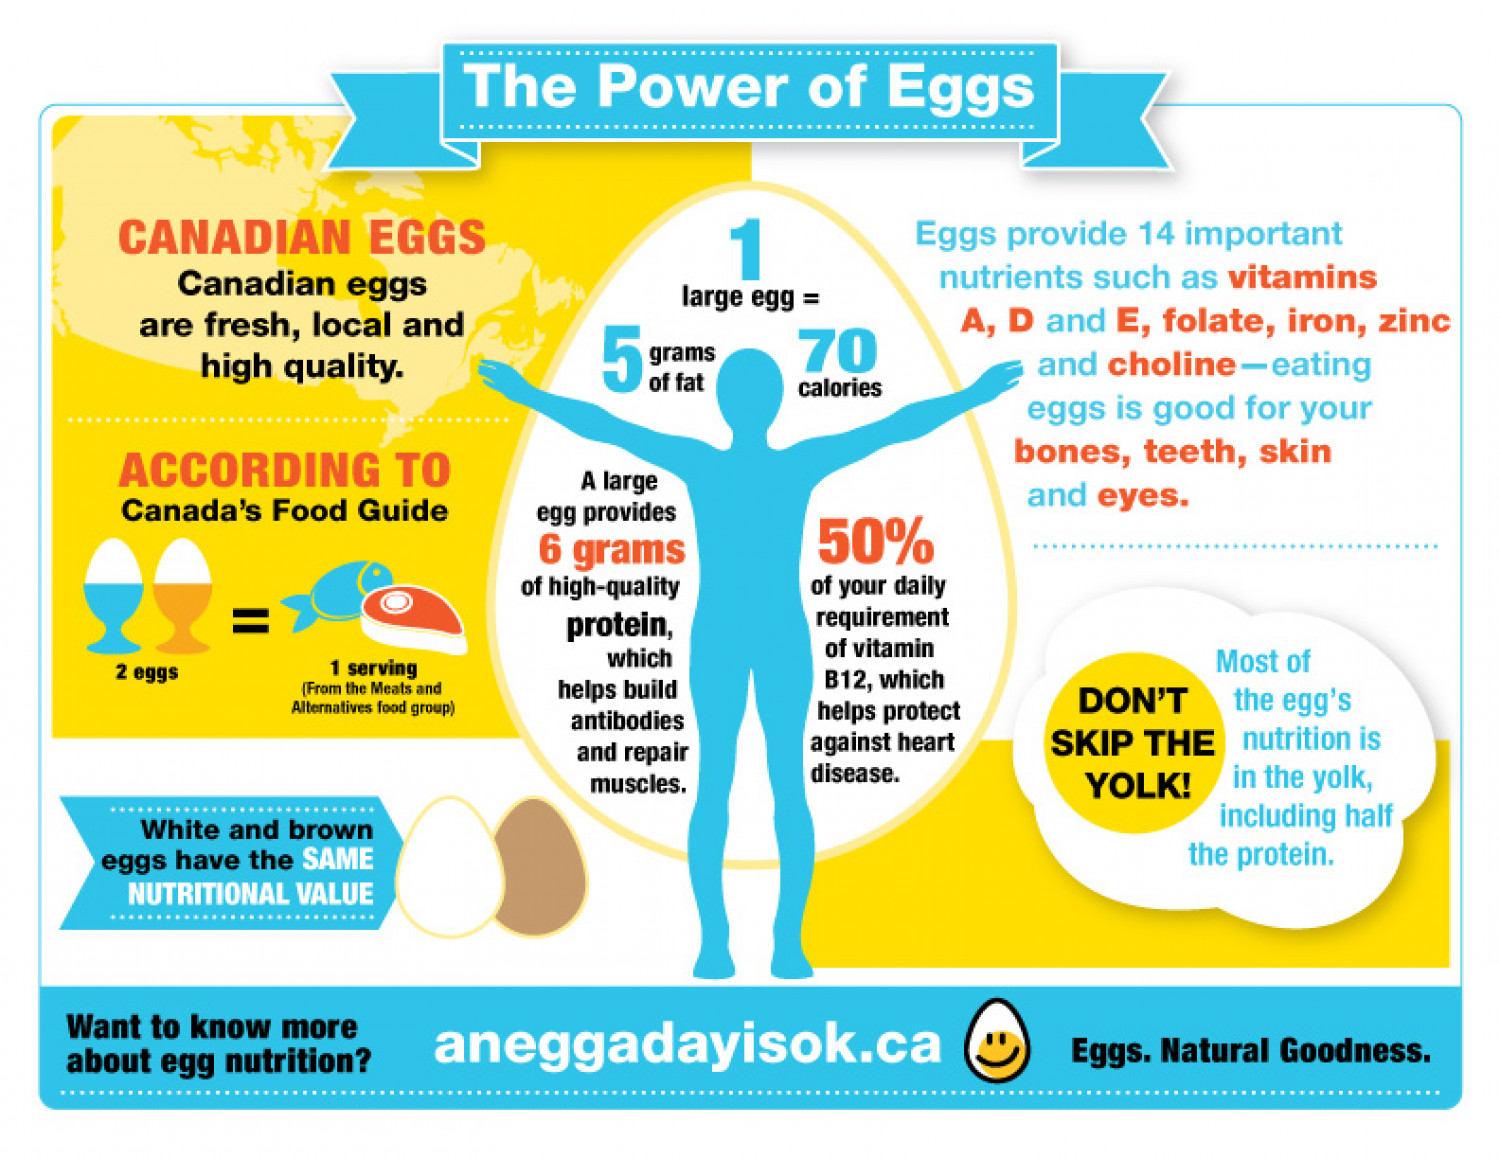 The Power of Eggs Infographic